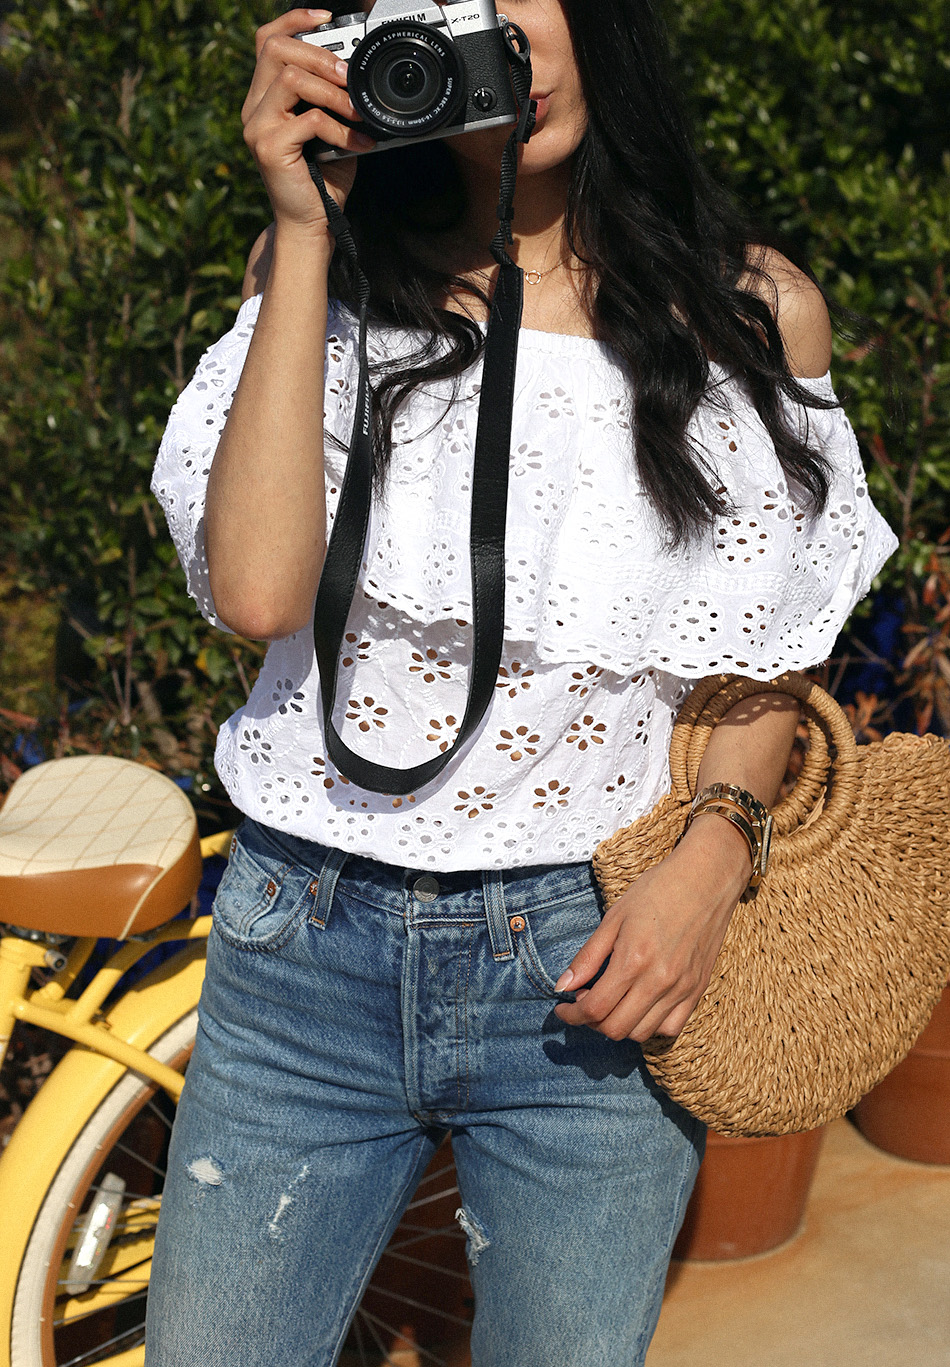 fujifilm camera blogger simply nancy blog | how to style a straw bag for summer